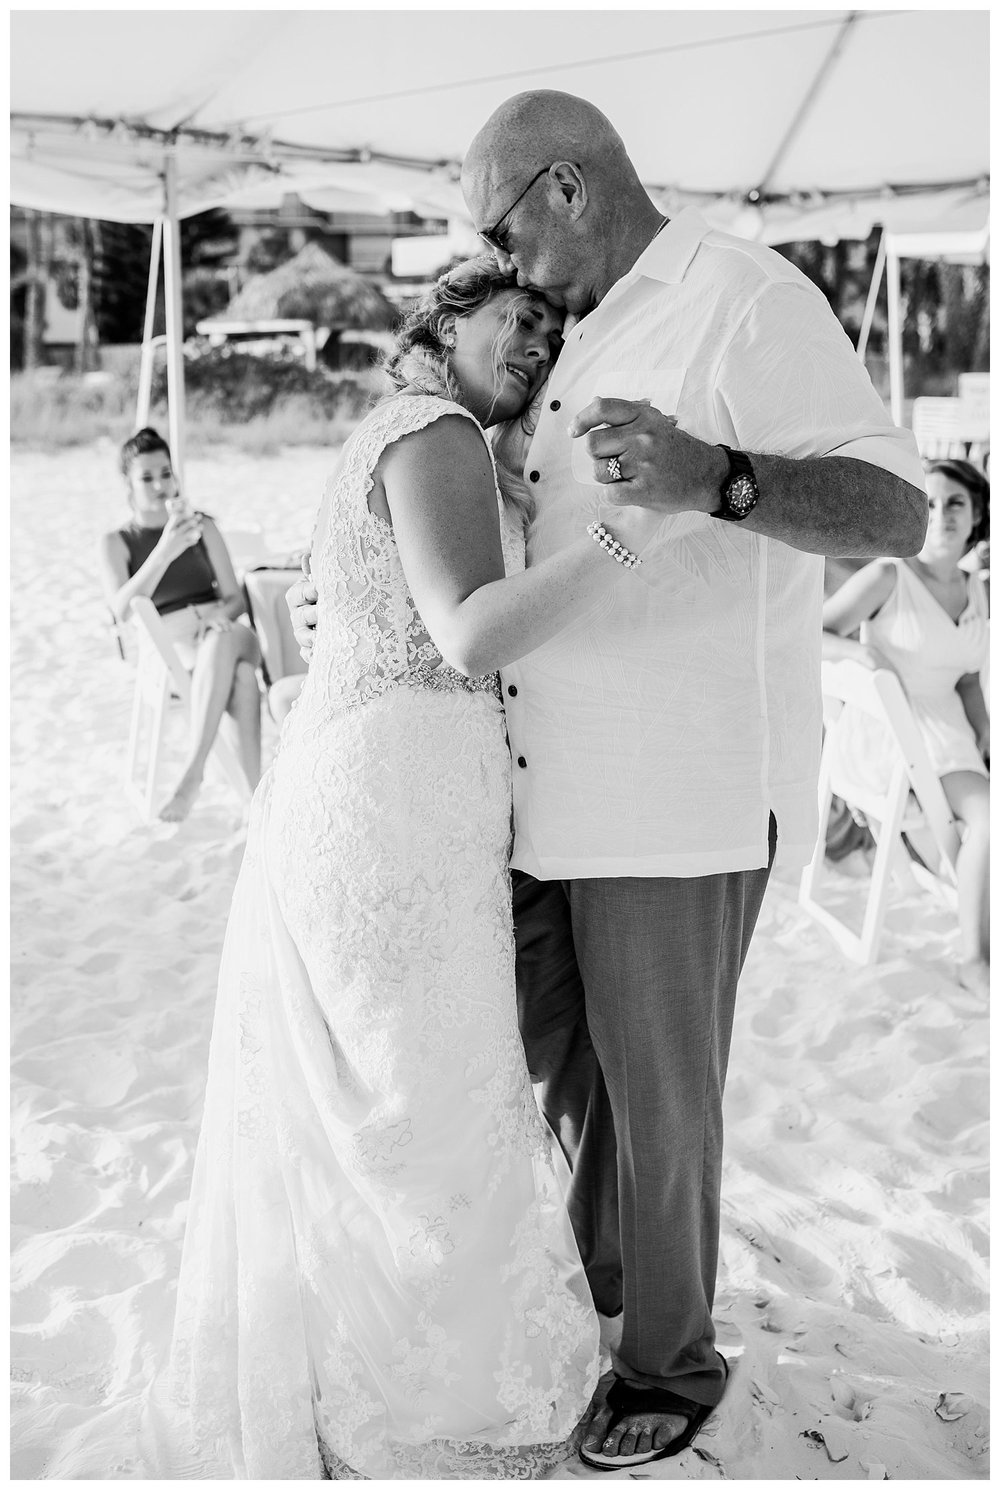 Kelsey_Diane_Photography_Destination_Wedding_Sarasota_Florida_Beach_Wedding_Alex_Austin_0669.jpg